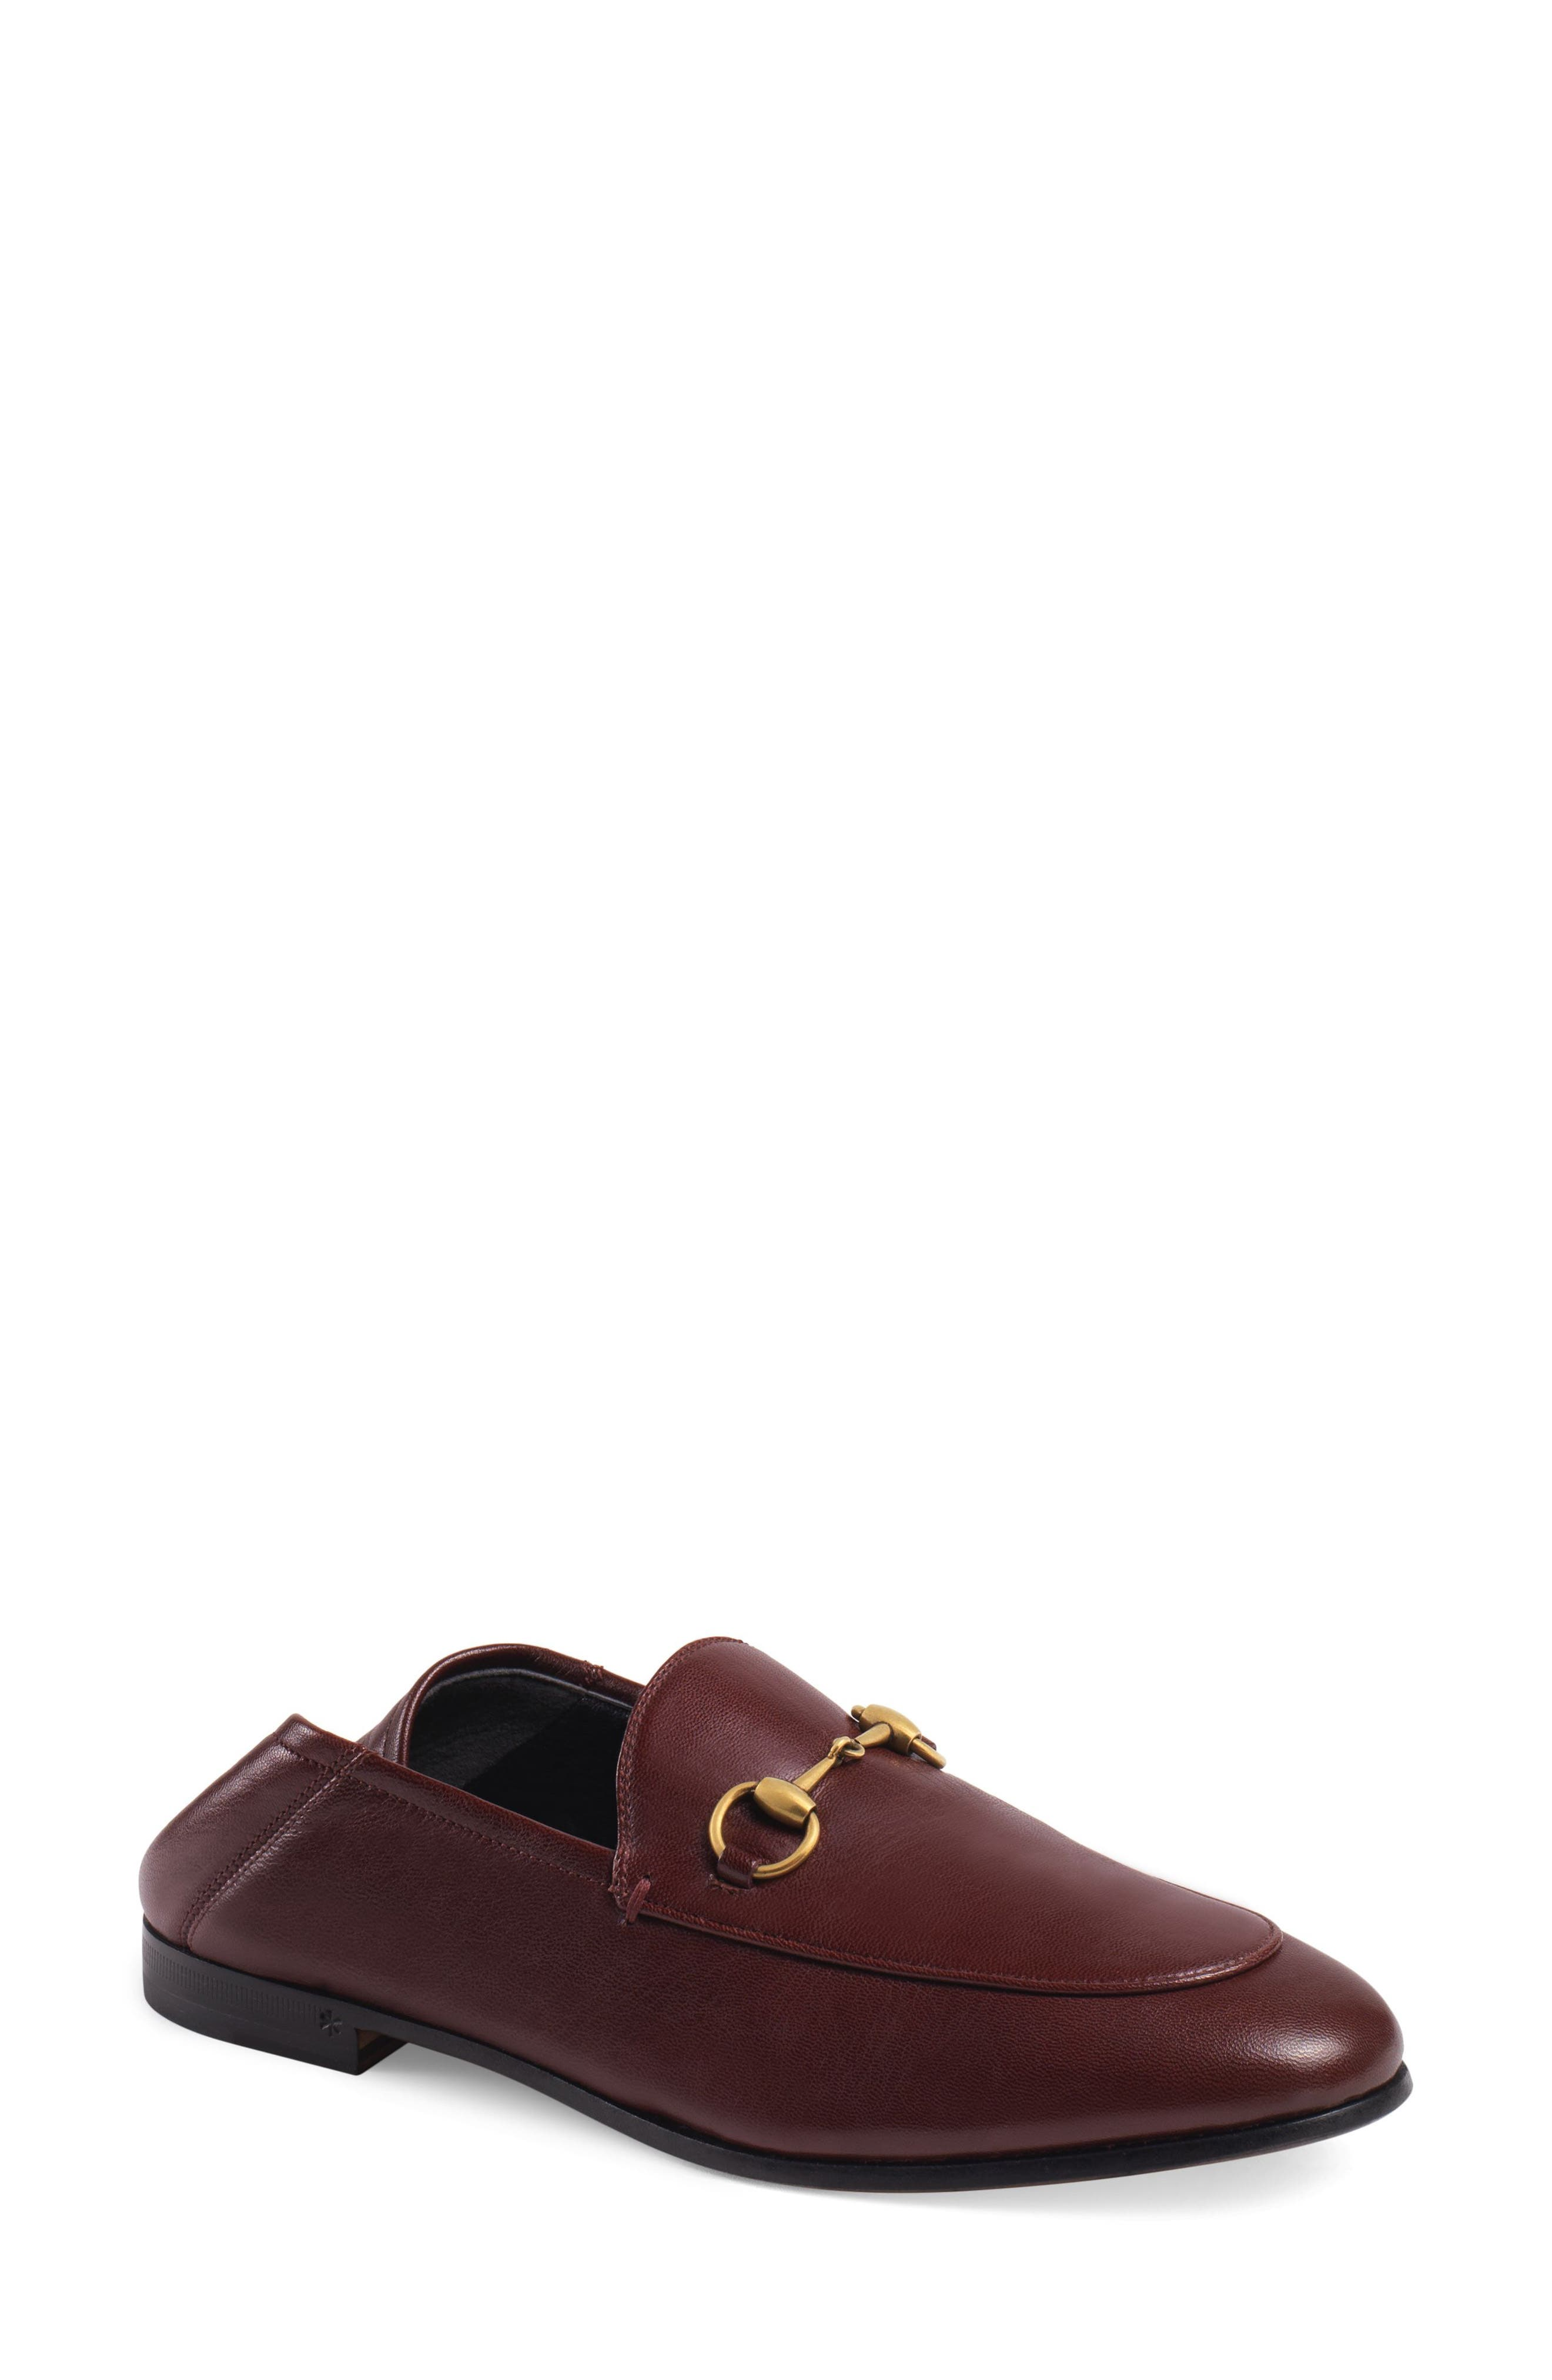 Gucci Brixton Convertible Loafer, Burgundy